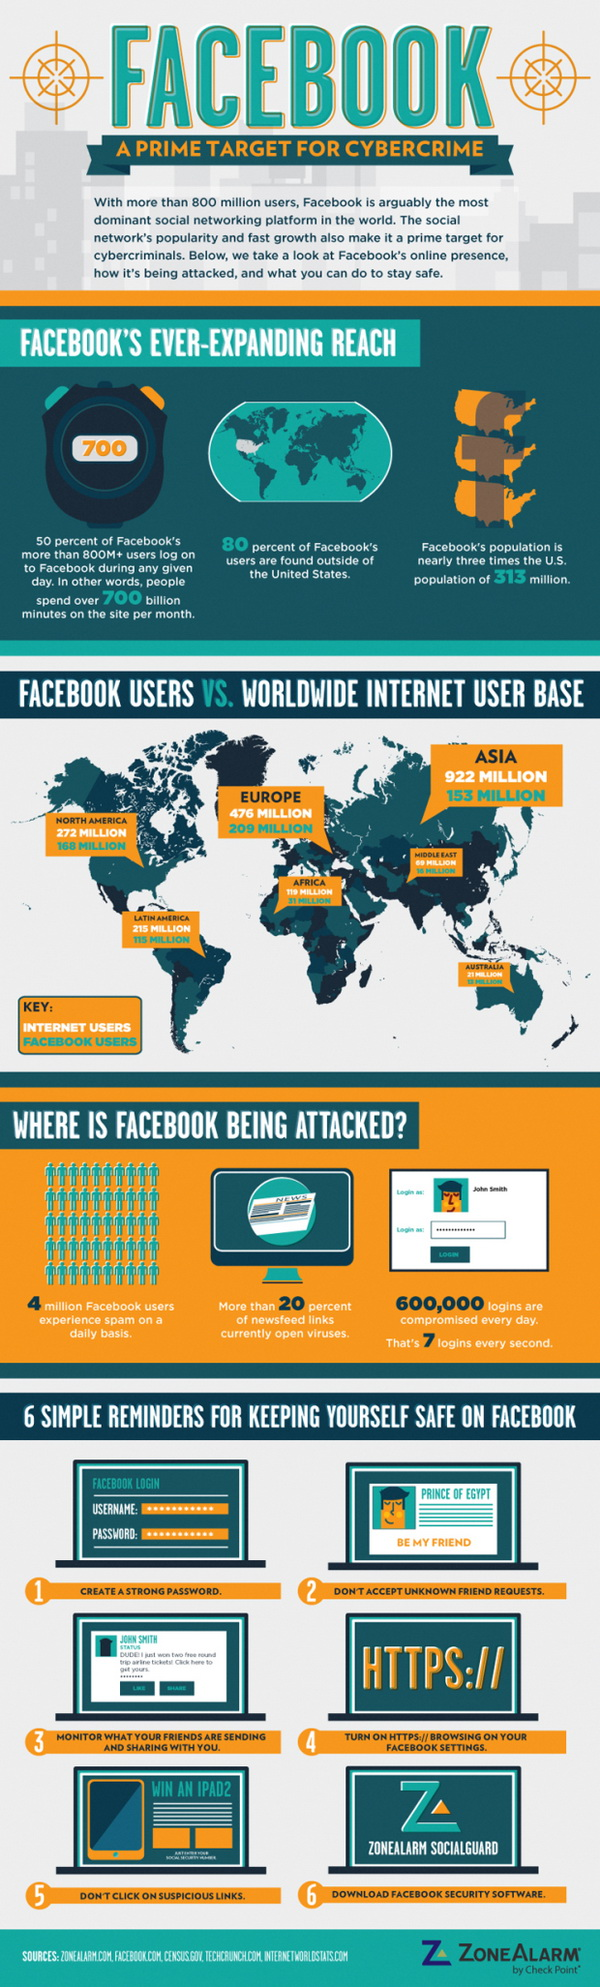 Facebook A Prime Target for Cybercrime